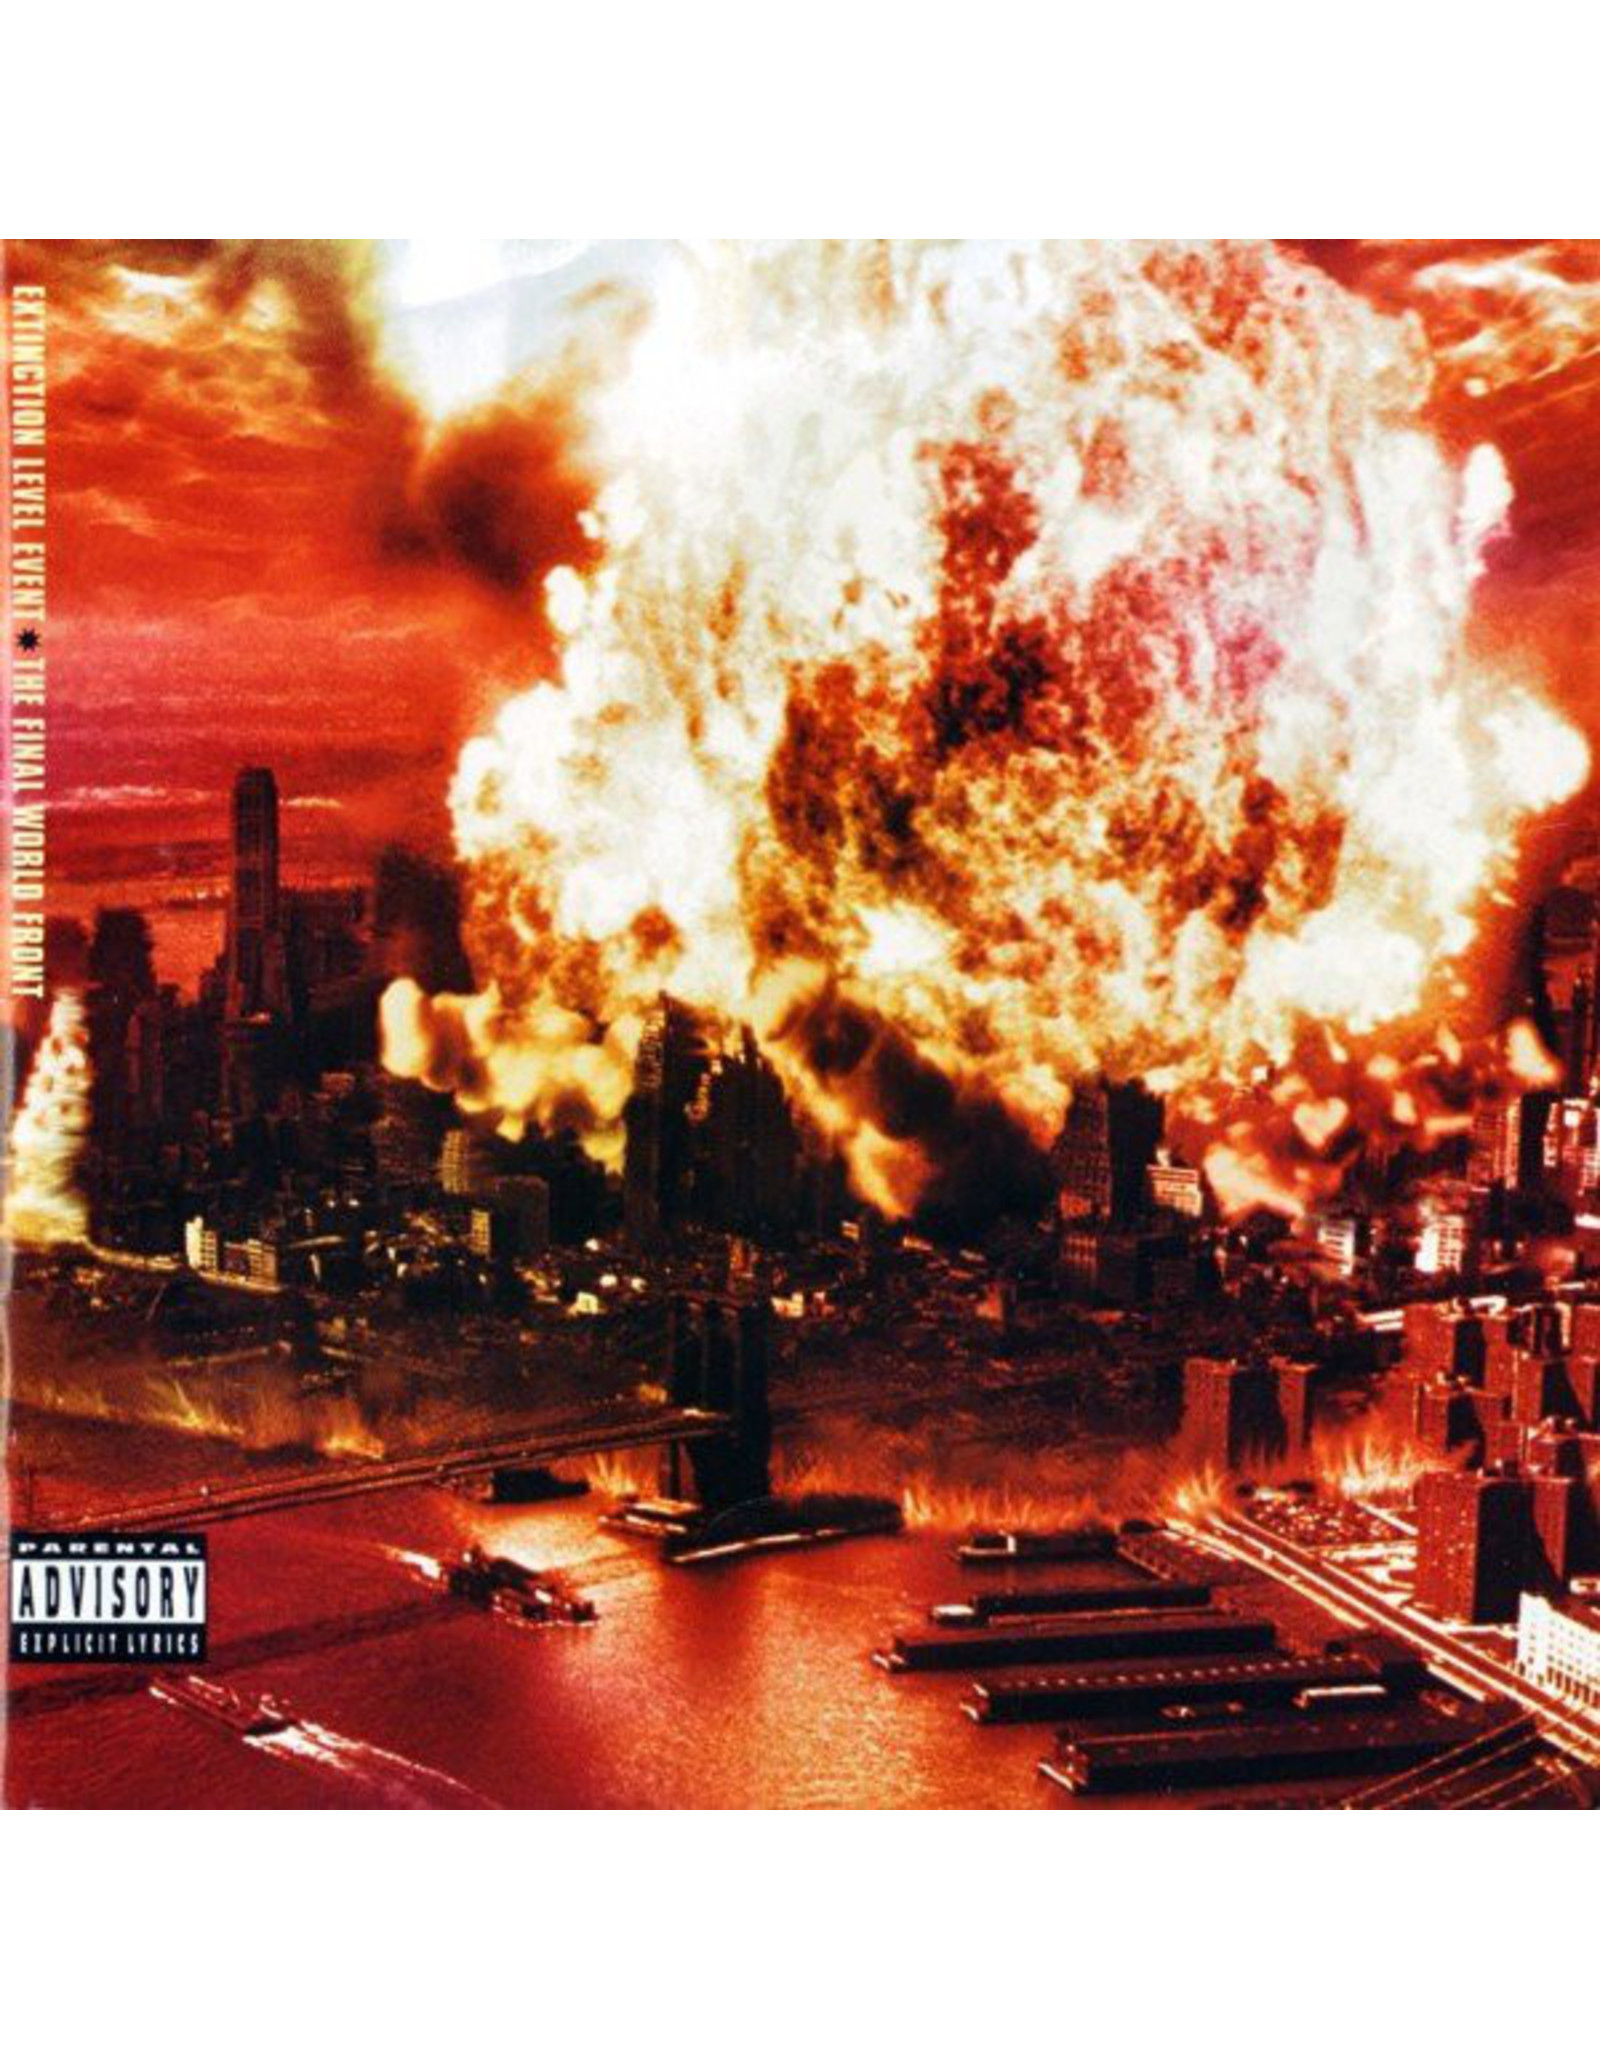 New Vinyl Busta Rhymes - Extinction Level Event 2LP